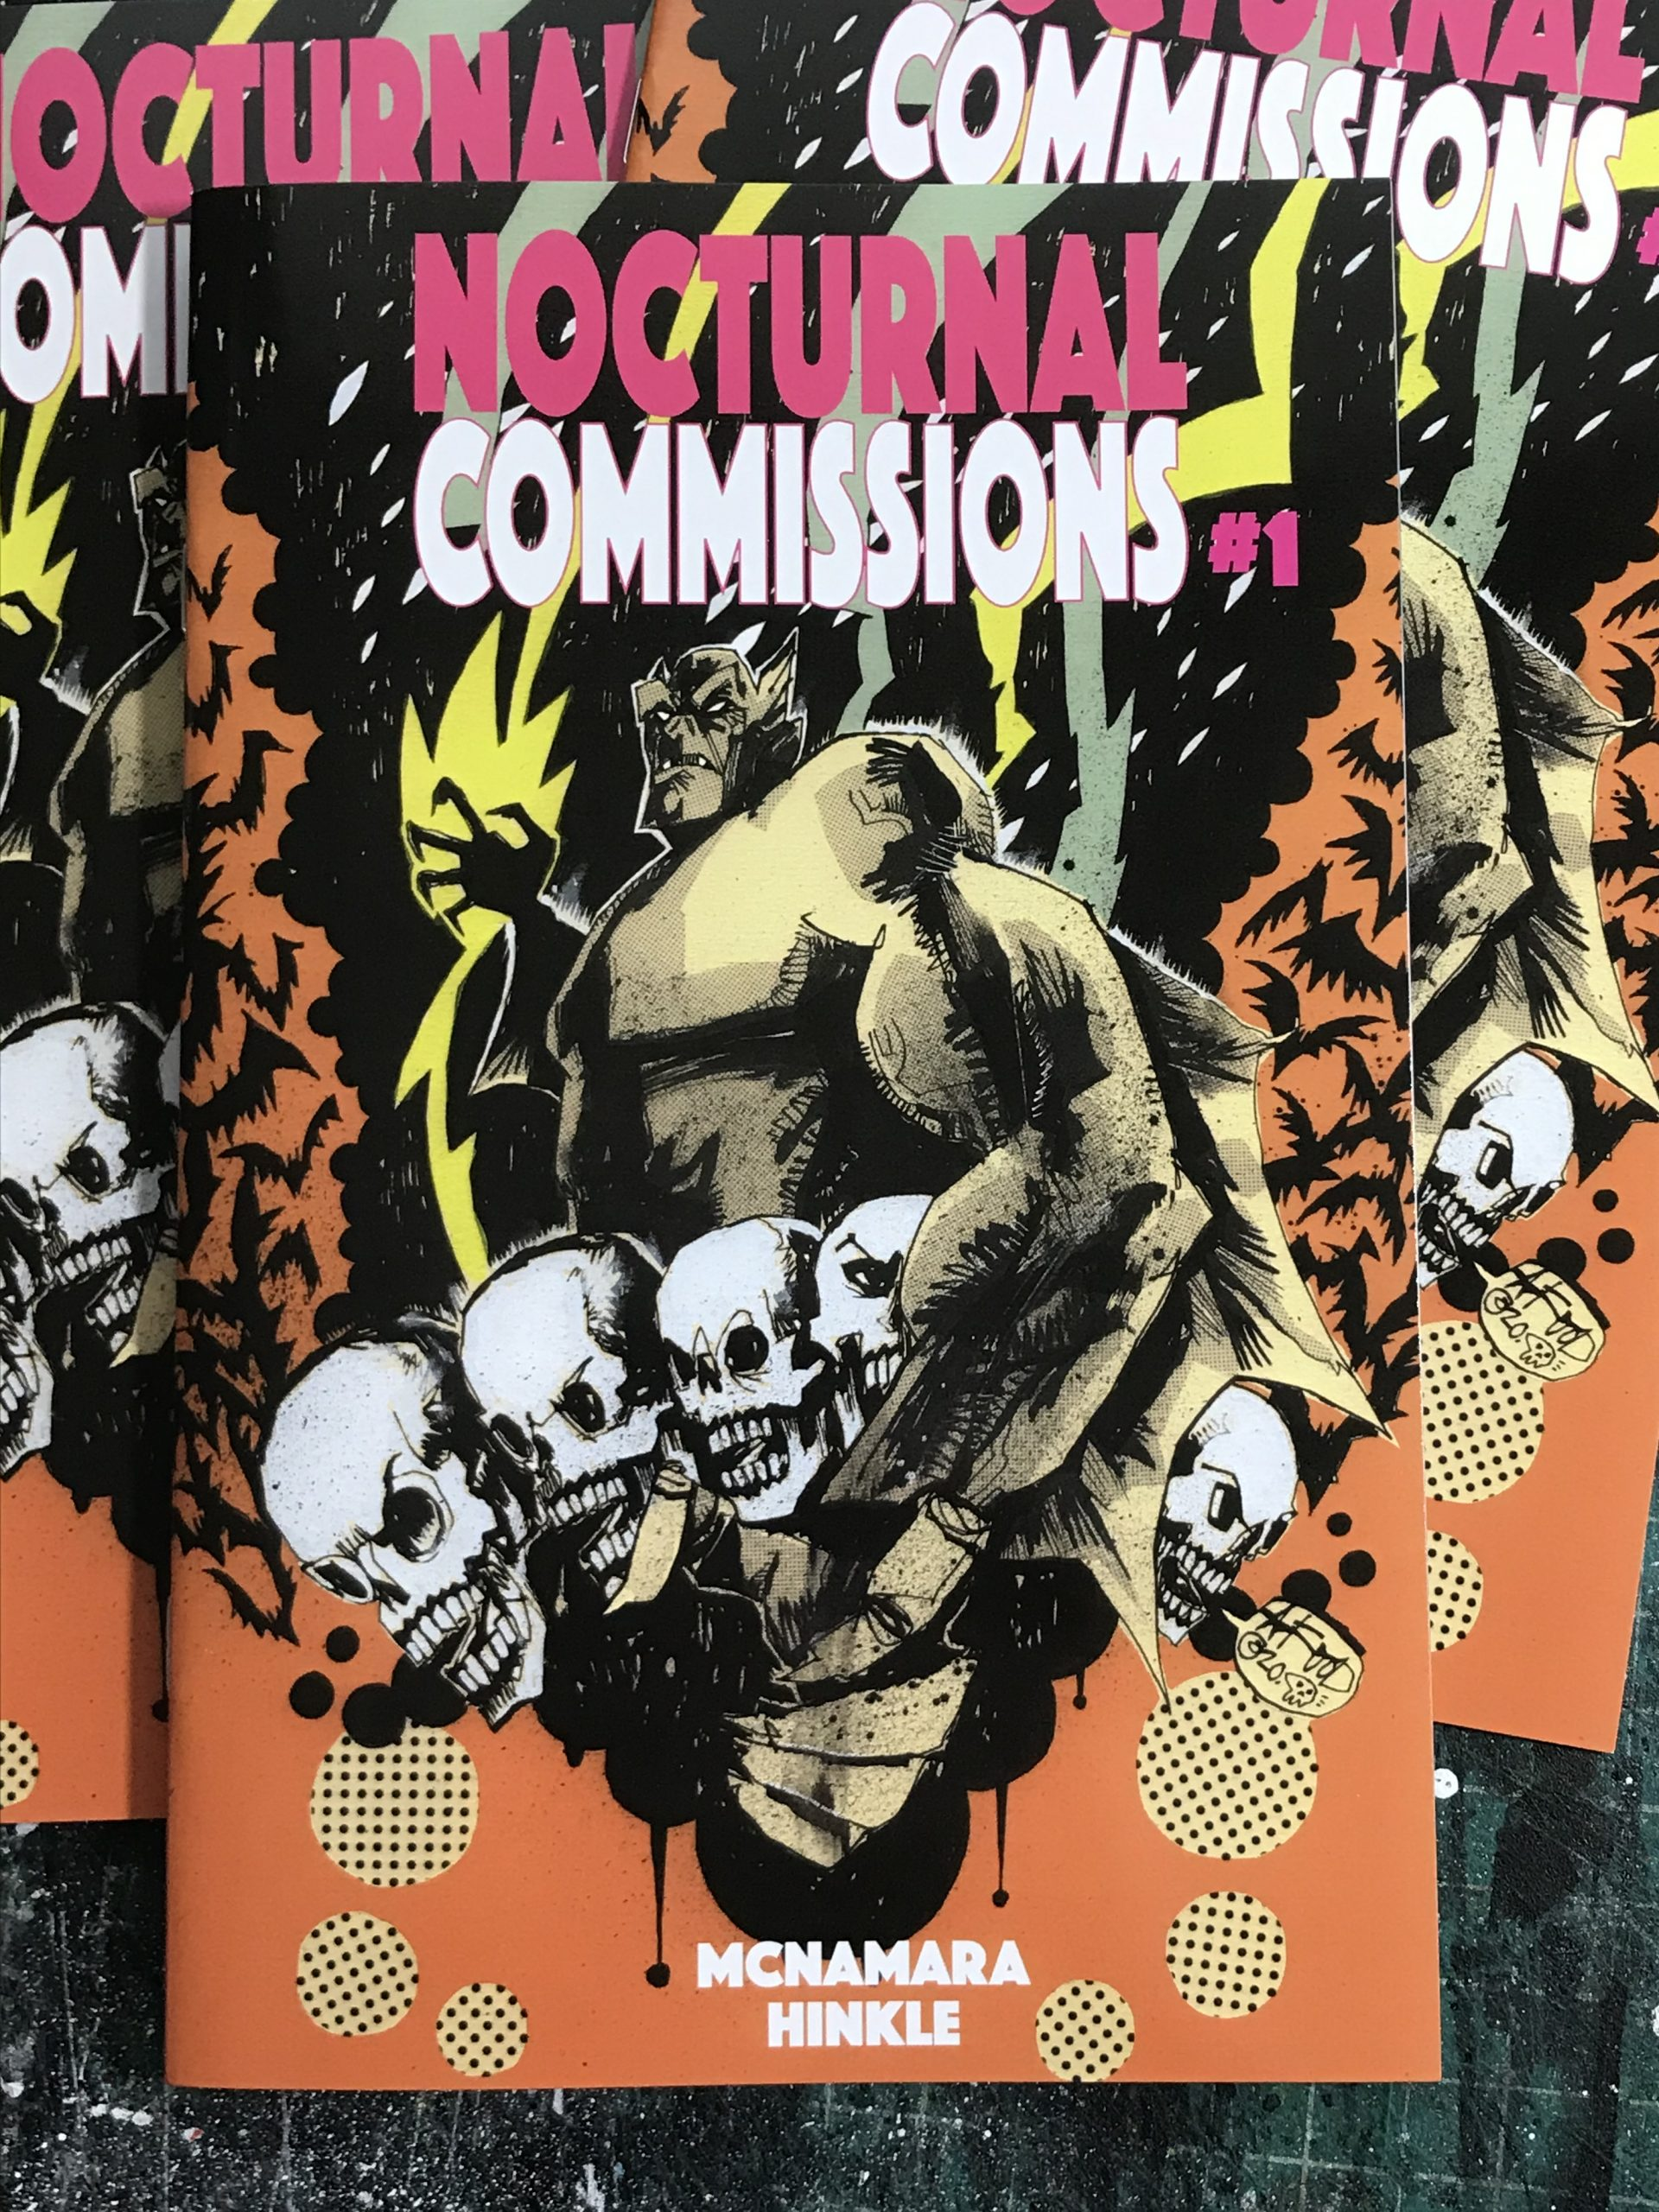 NOCTURNAL COMMISSIONS #1 VARIANT COVER